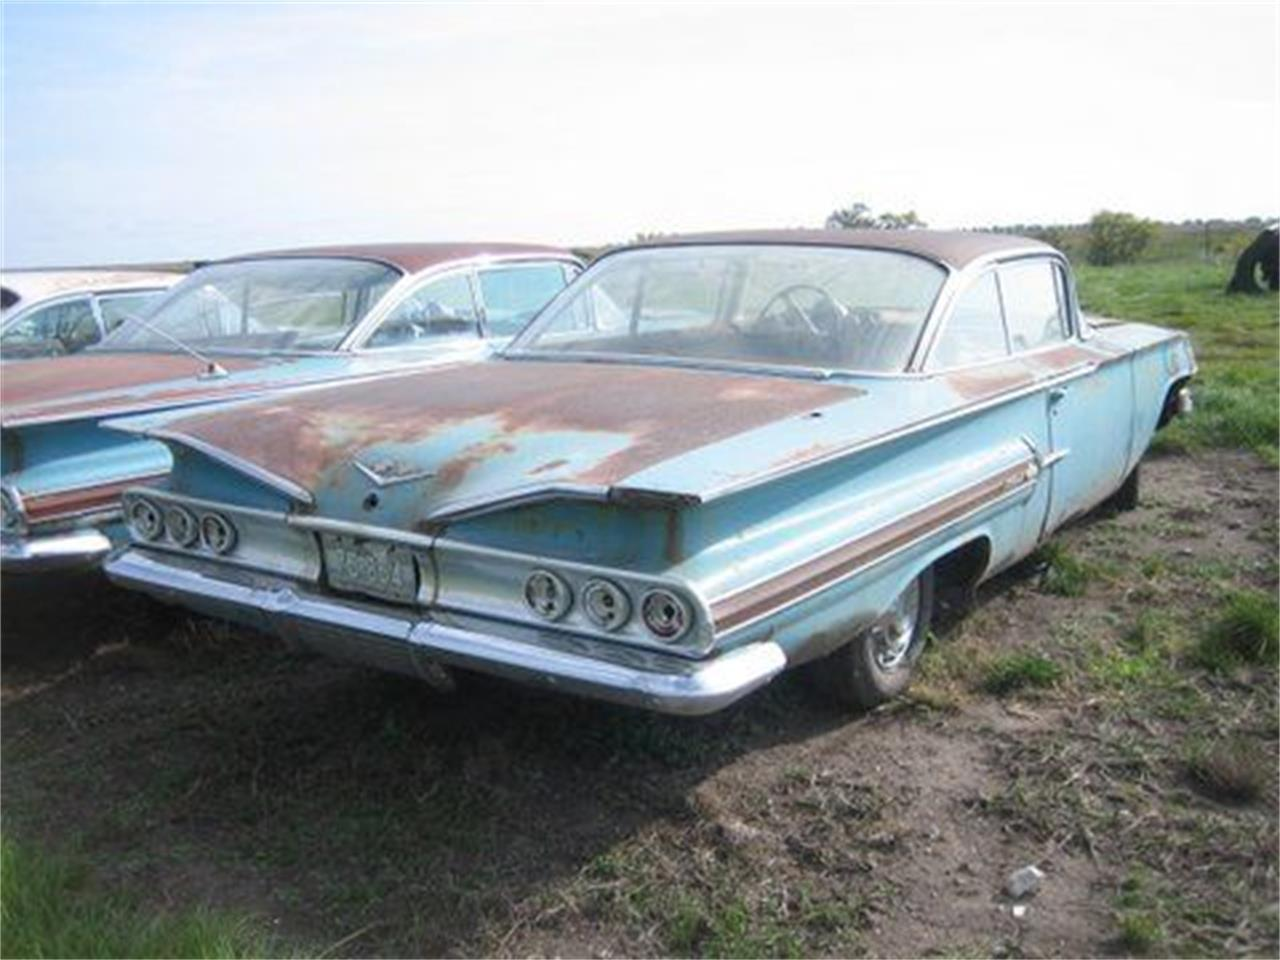 Large Picture of 1960 Chevrolet Impala located in Michigan - $10,995.00 - Q4BT